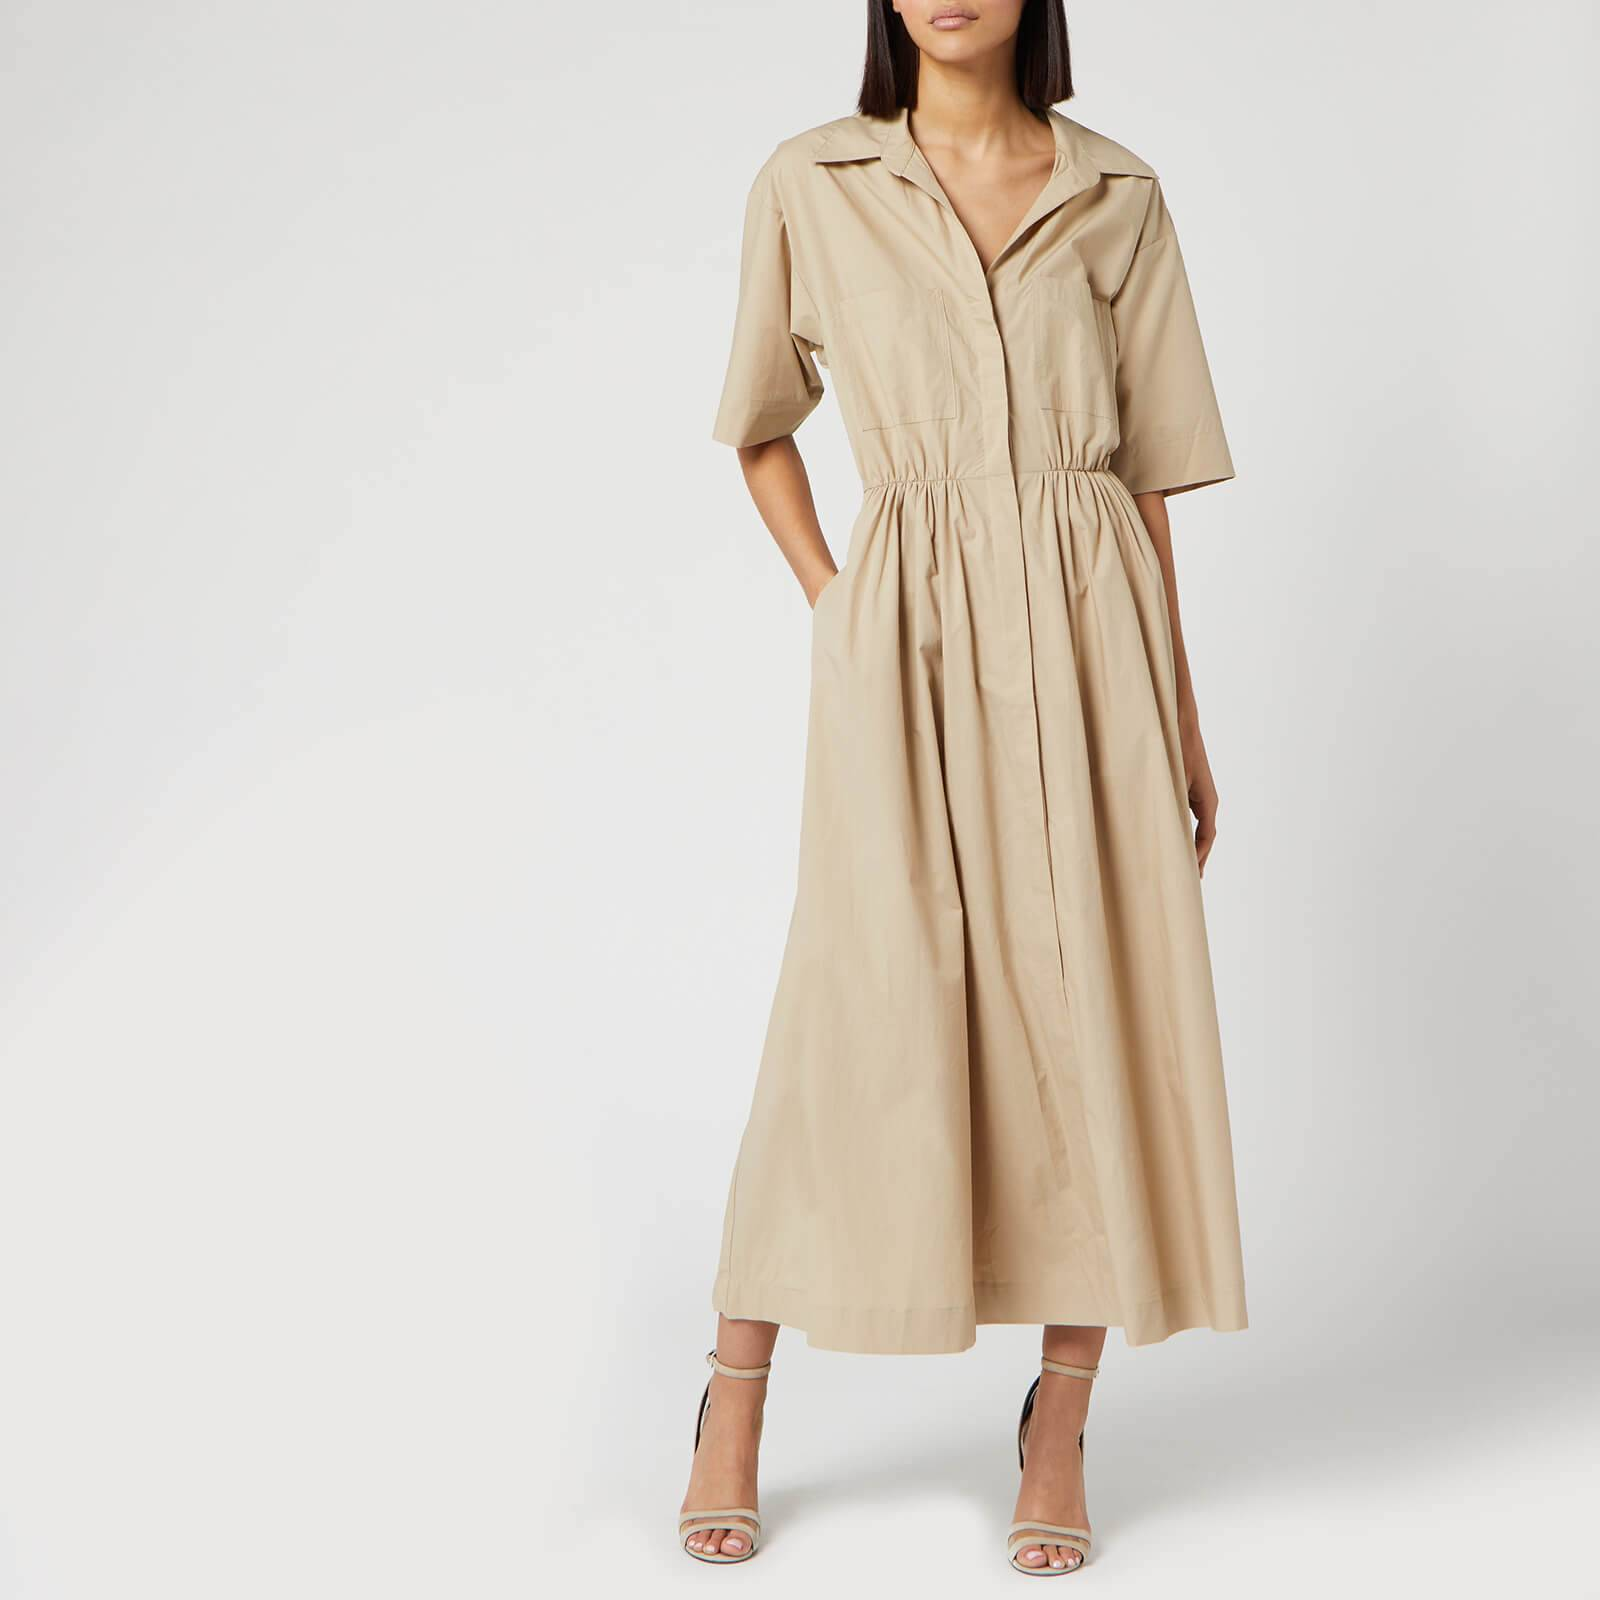 Bec & Bridge Women's Surfari Shirt Dress - Safari - UK 10